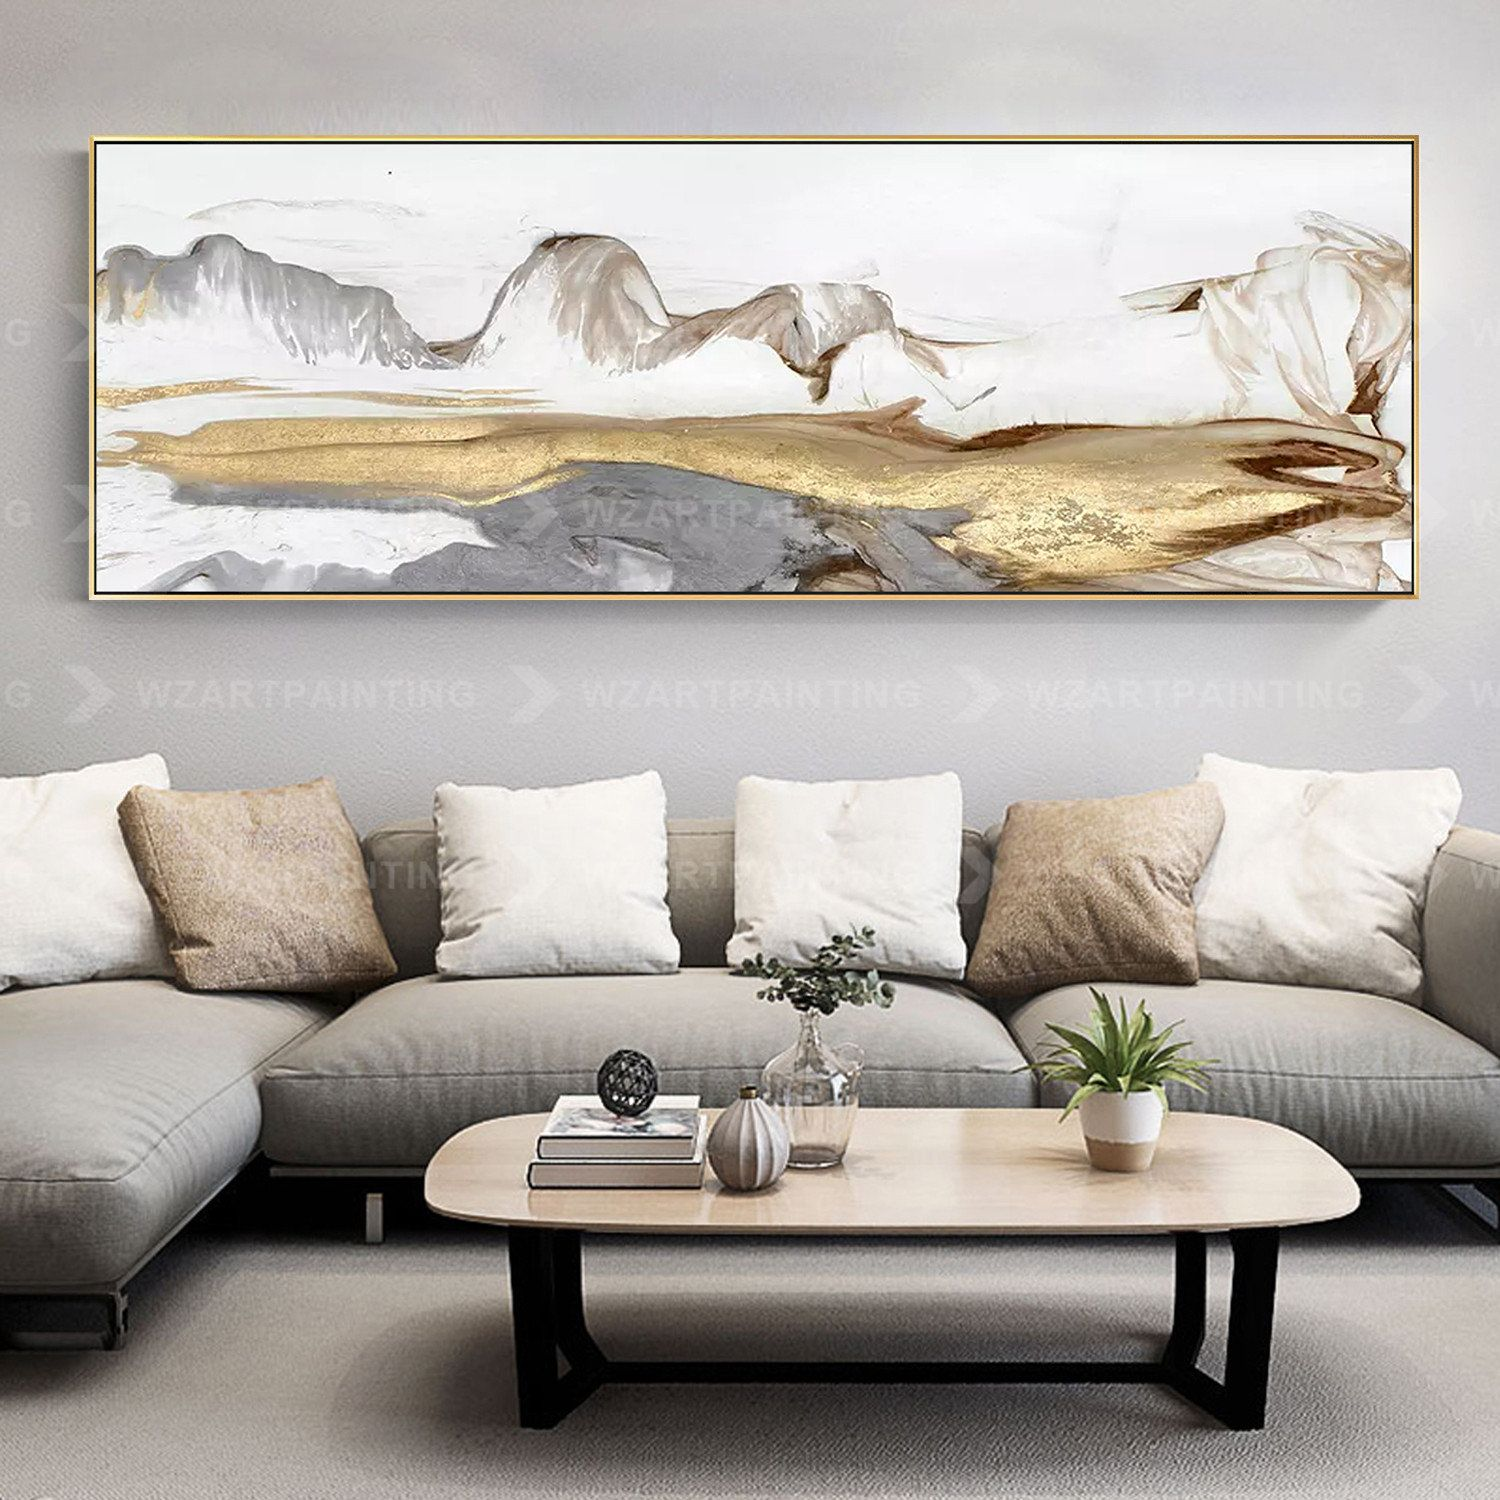 Abstract Mountain Print Painting Frame Wall Art On Canvas Art Etsy In 2020 Contemporary Living Room Art Large Wall Art Living Room Living Room Art #paintings #with #frame #for #living #room